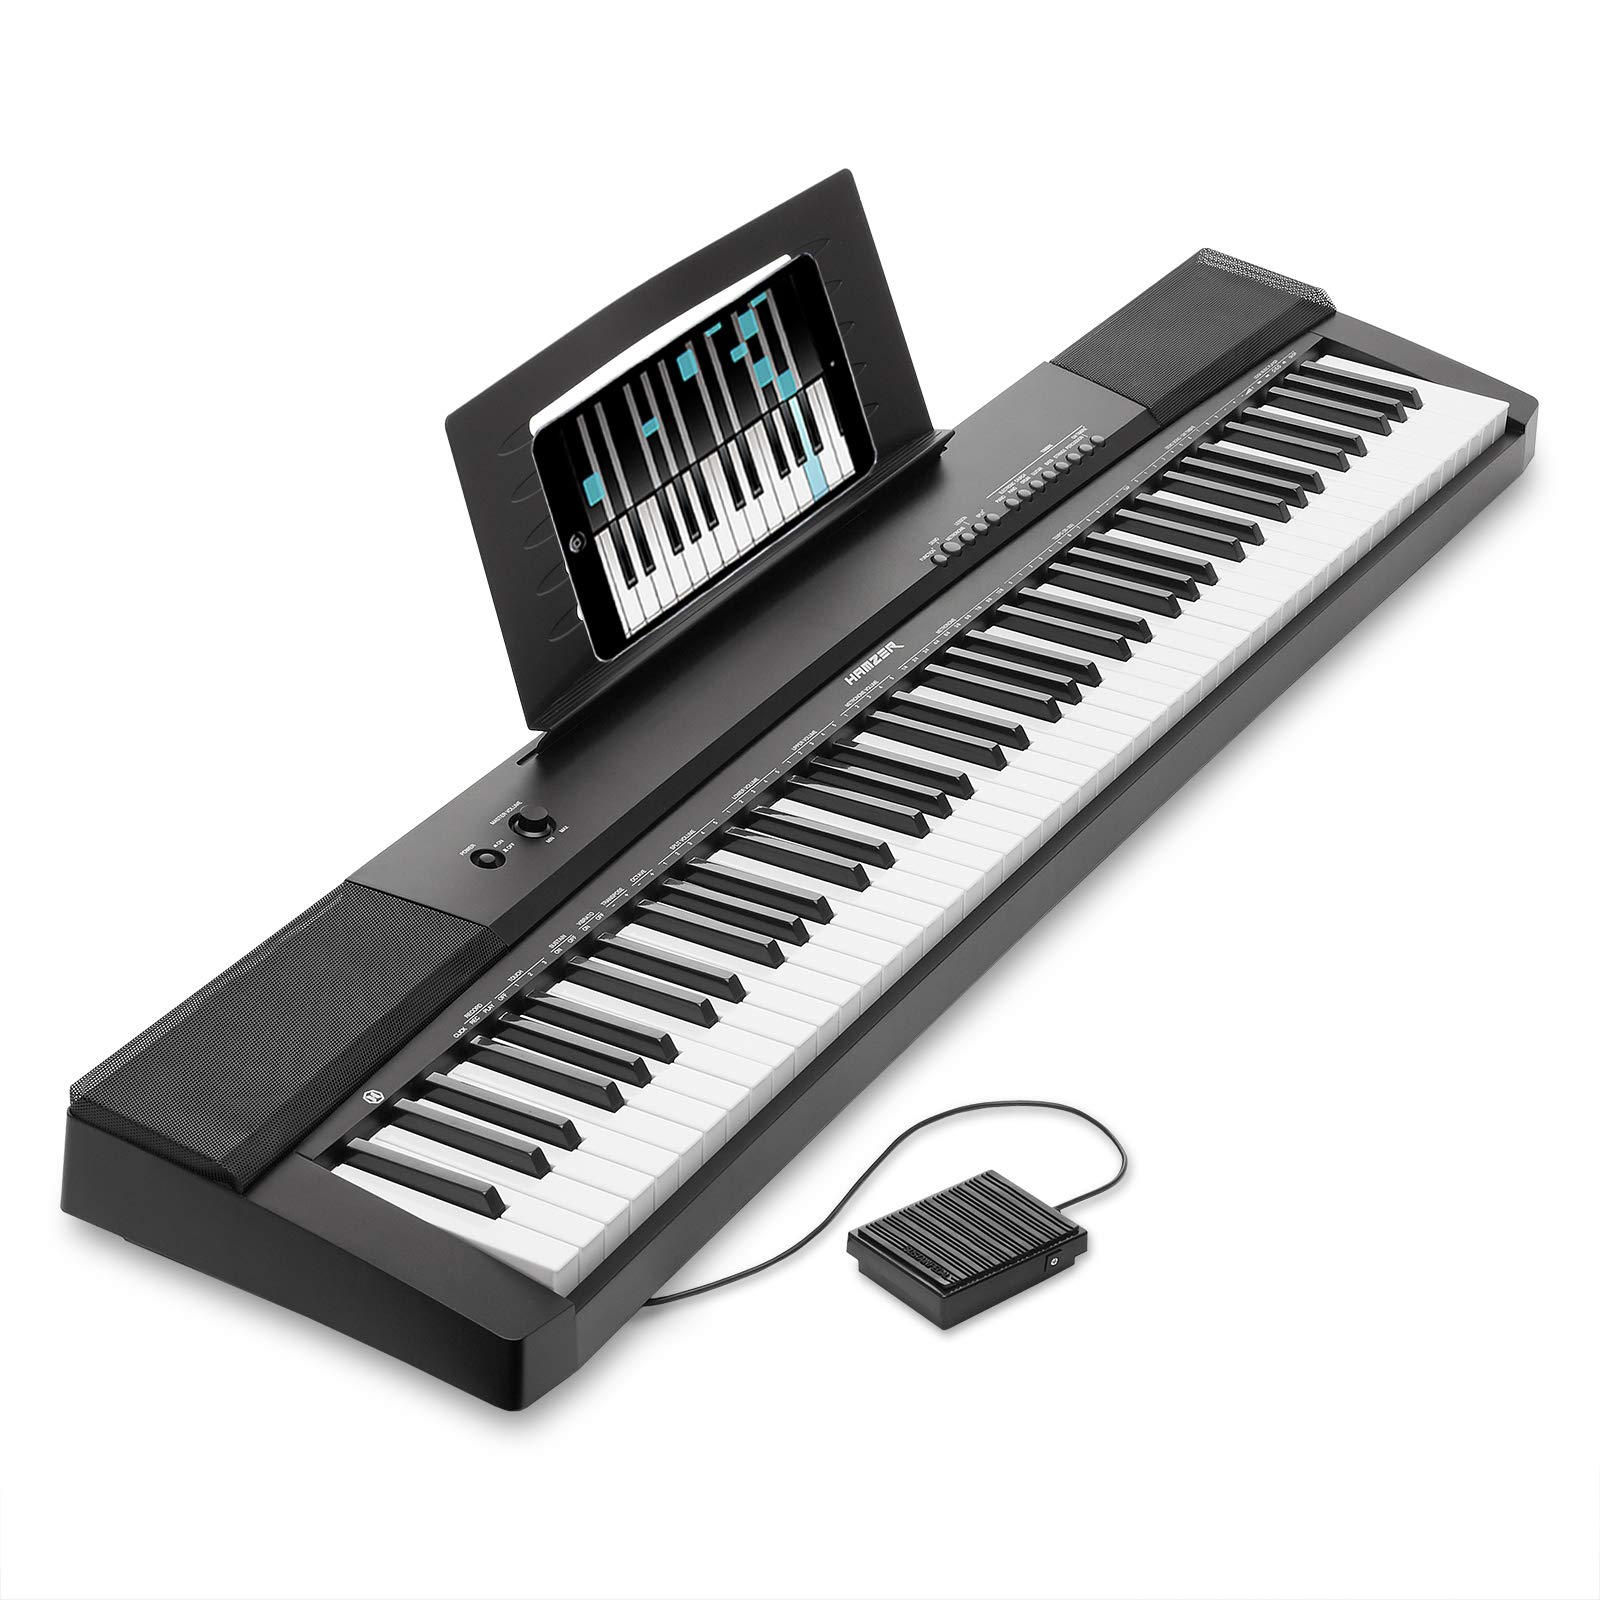 Hamzer 88-Key Electronic Keyboard Portable Digital Music Piano with Touch Sensitive Keys